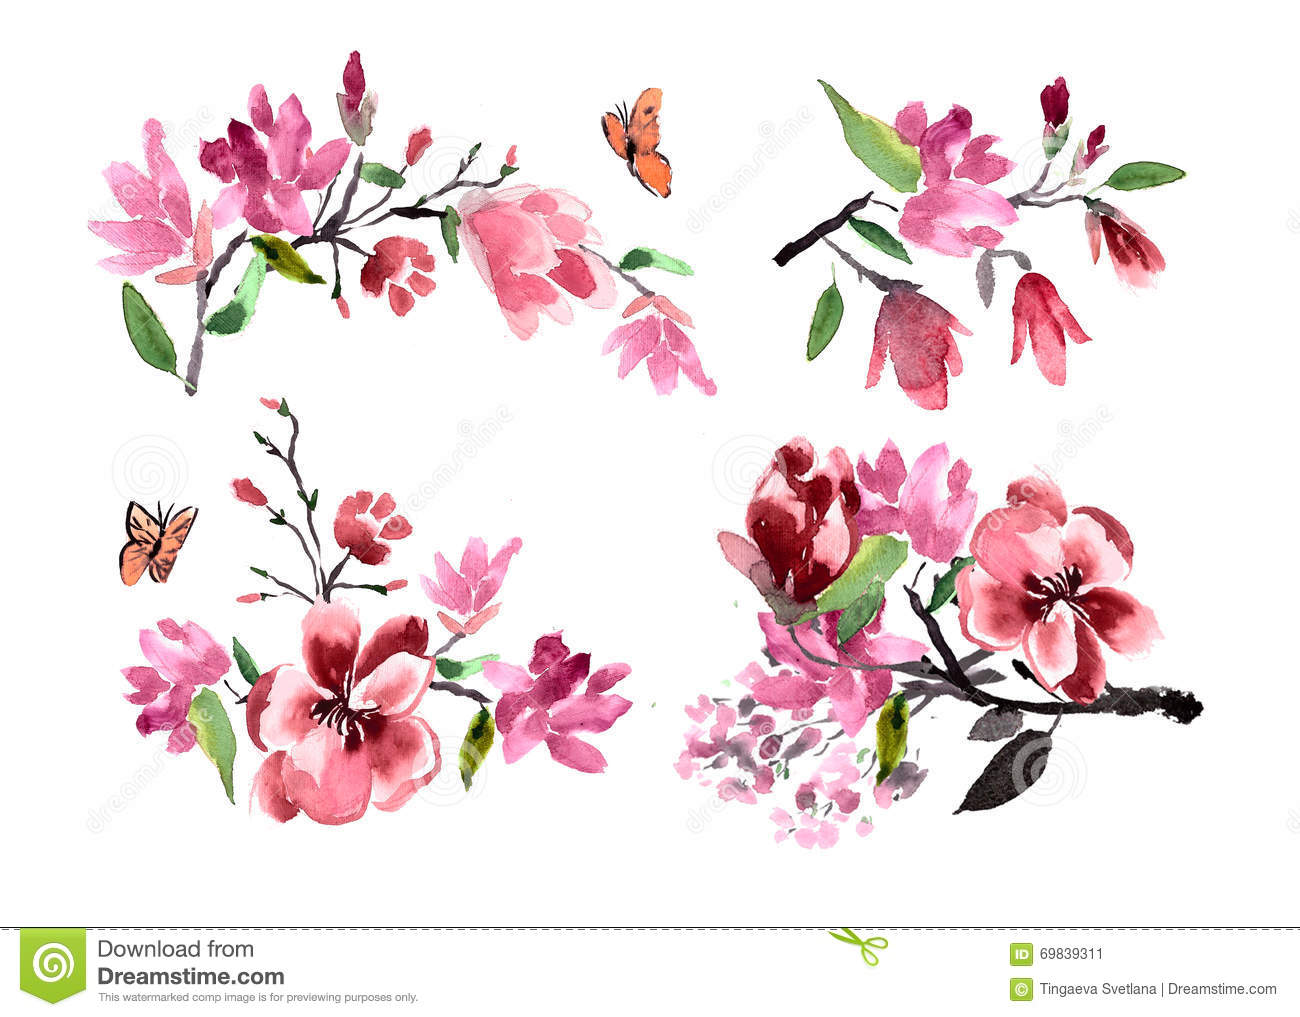 Bouquets of flowers magnolia watercolor painted stock illustration bouquets of flowers magnolia watercolor painted biocorpaavc